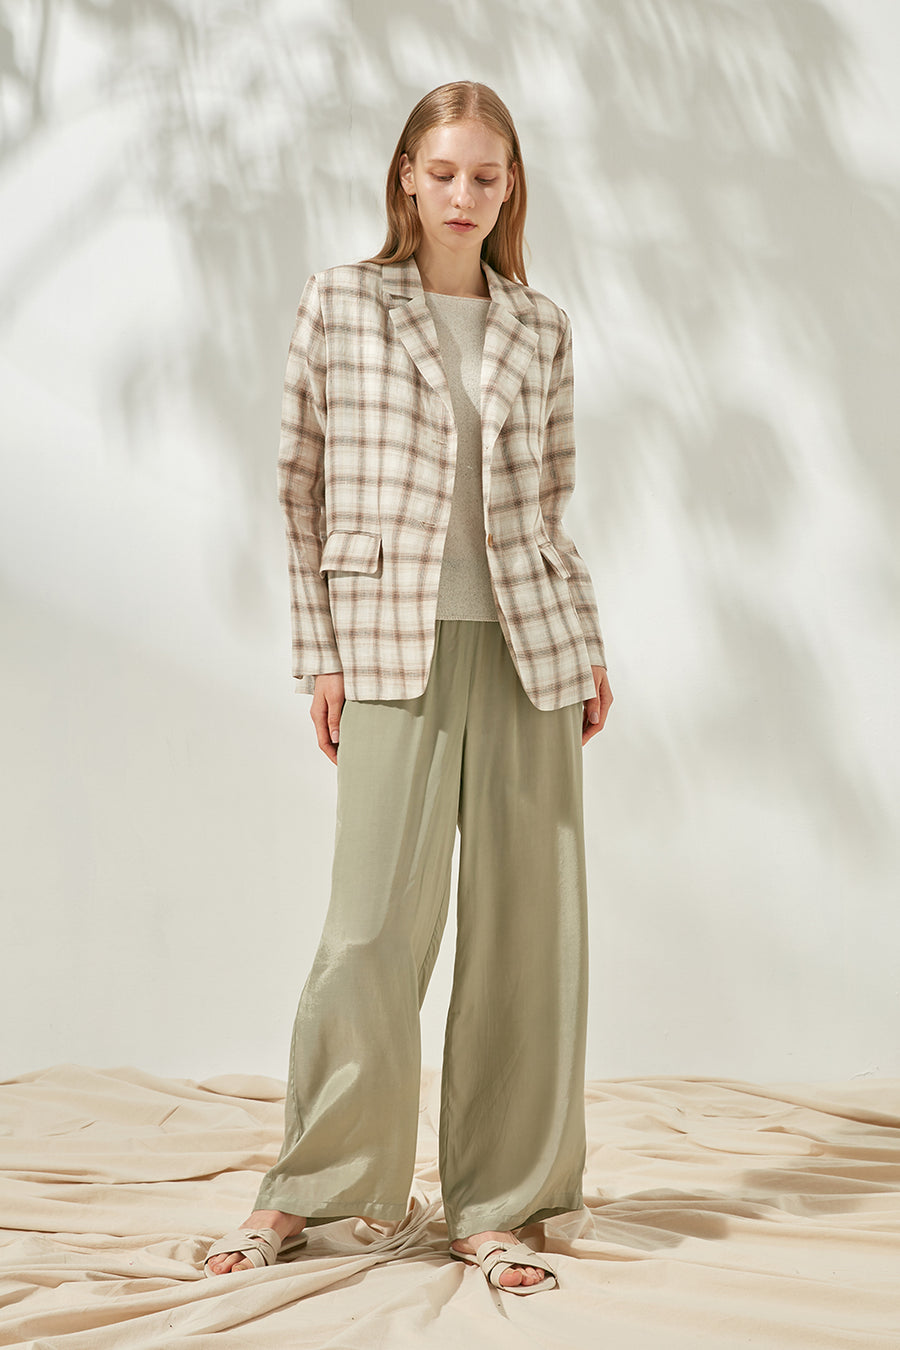 Checked linen blazer - Zelle Studio